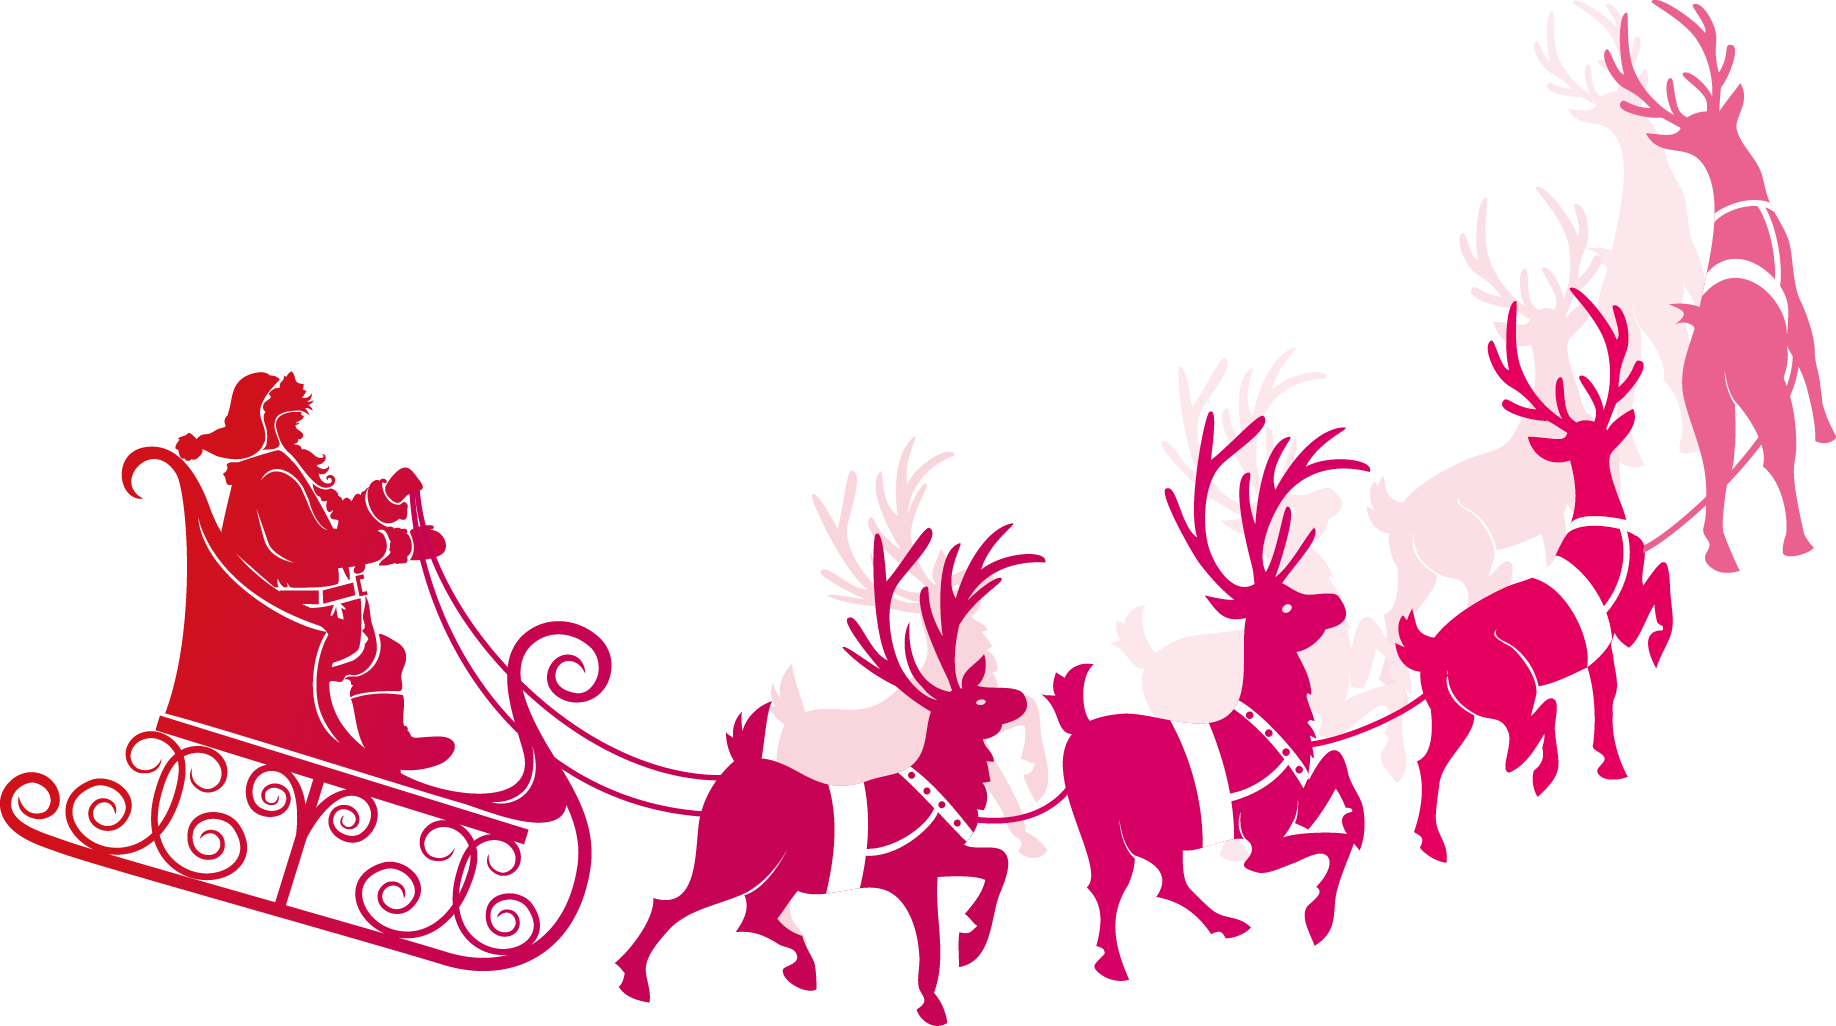 Santa And His Sleigh Clipart at GetDrawings.com | Free for ...